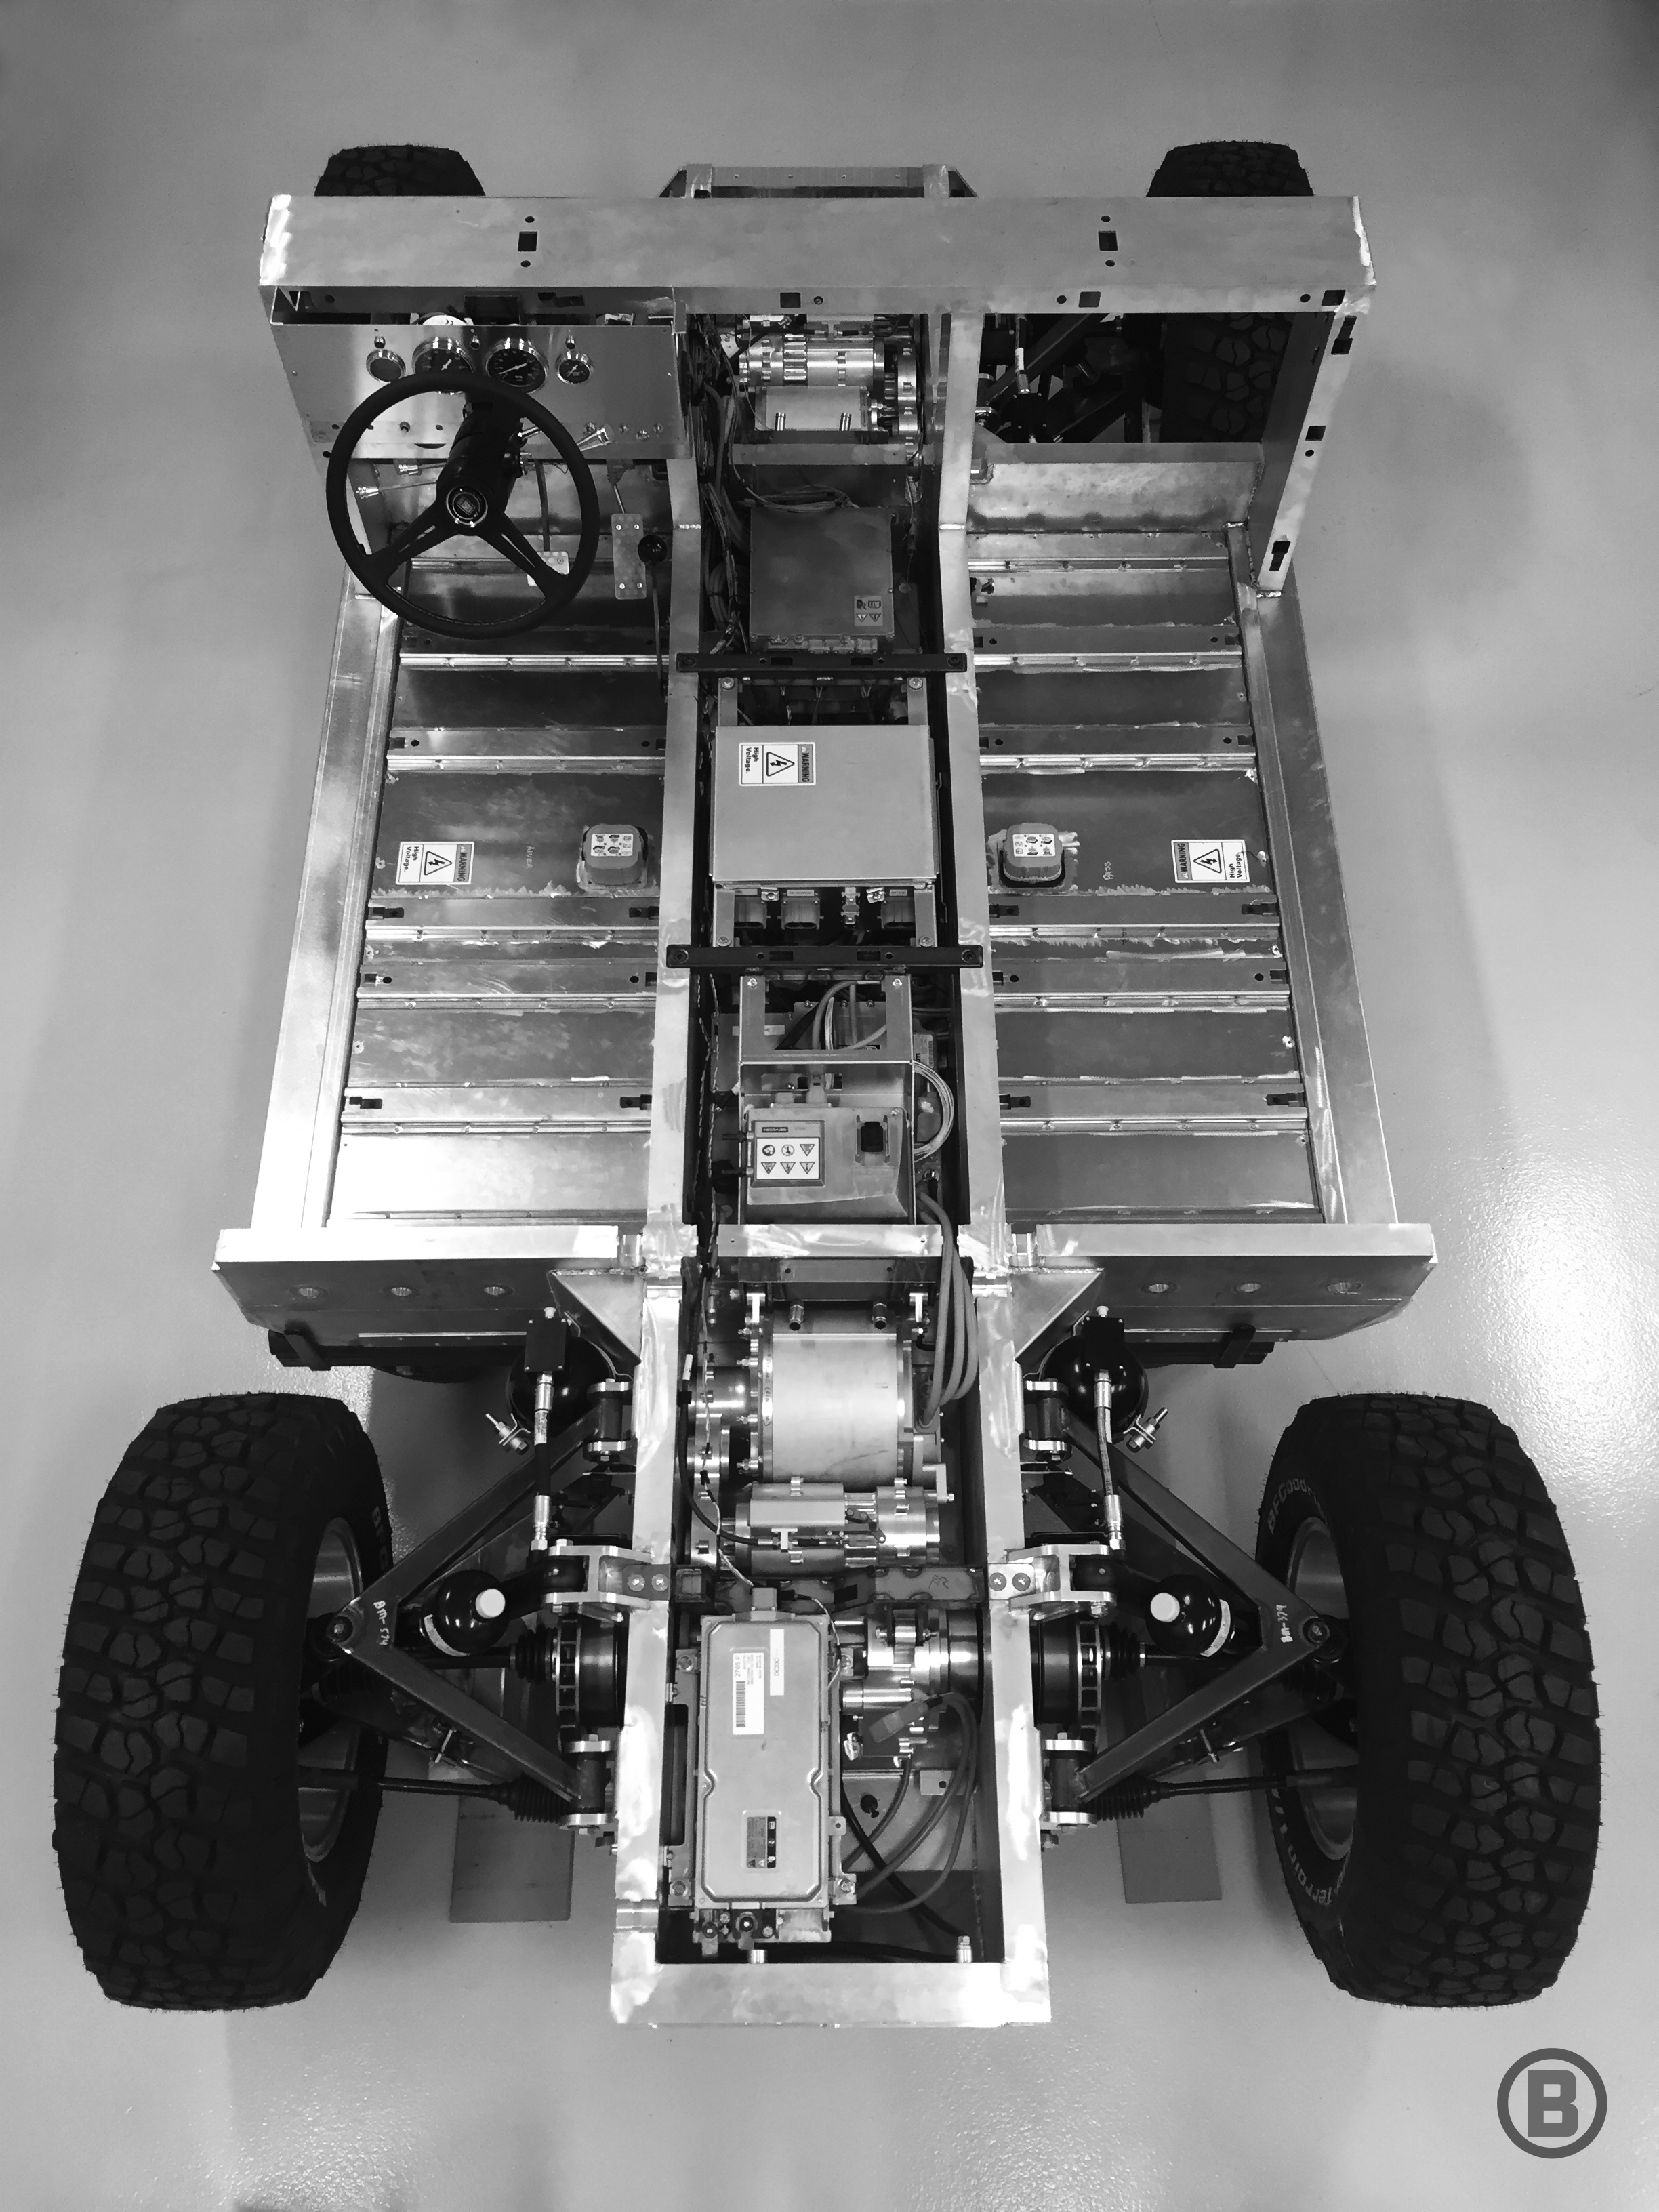 The Frame Of Electric Aluminum Bollinger B1 Sport Utility Truck Is Shown Provided By Motors